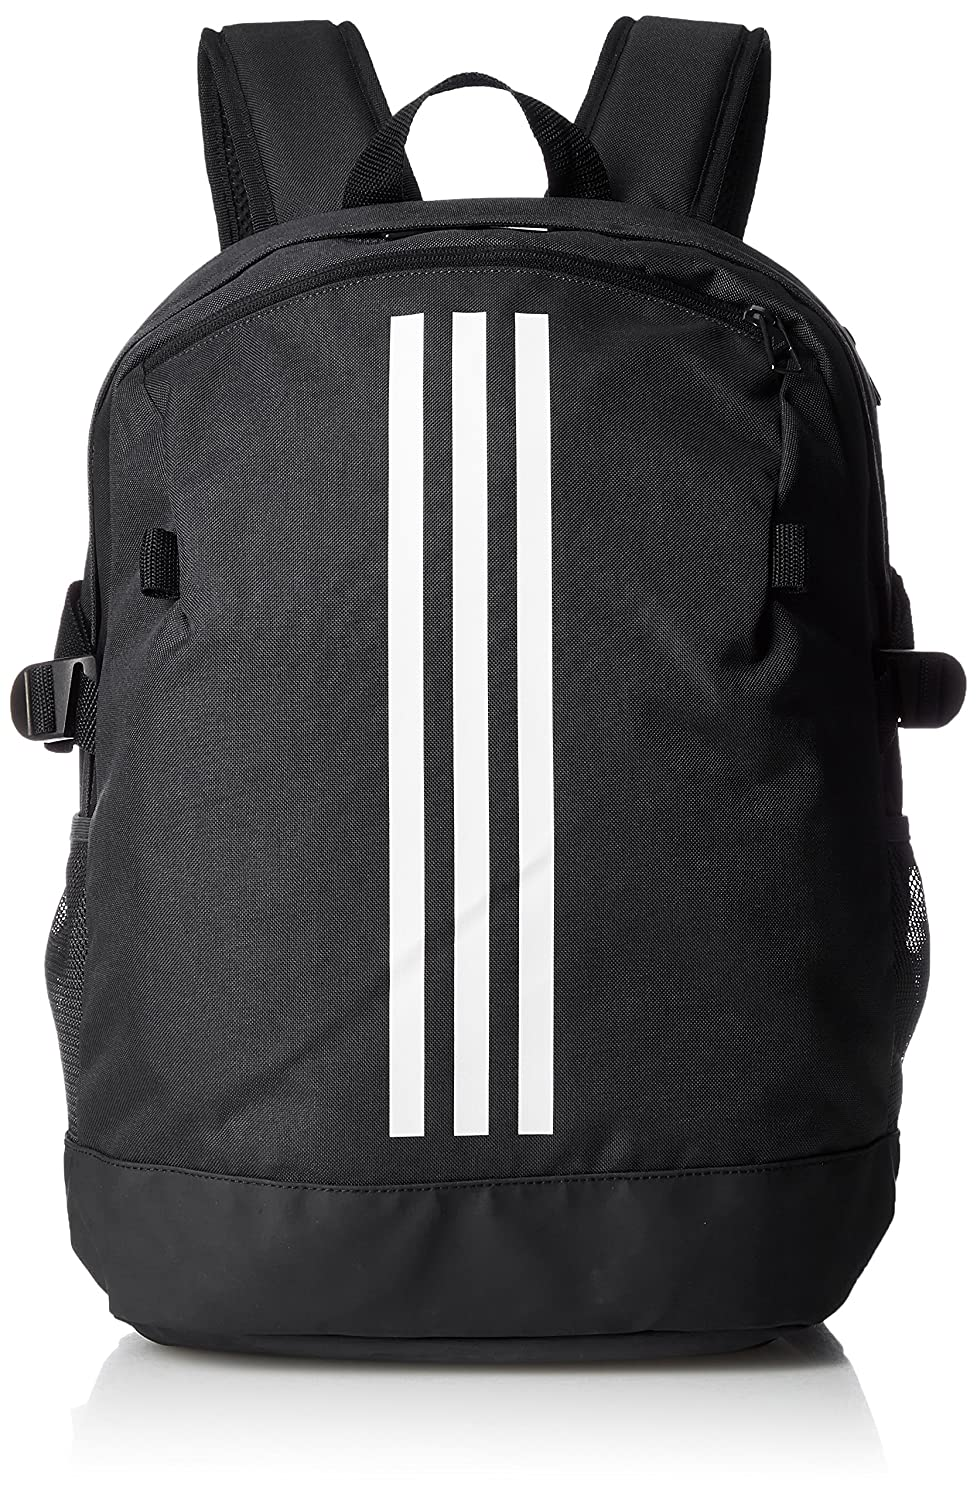 94551e73719 Amazon.com  adidas 3-Stripe Power Schoolbag Backpack - Black White -  Medium  Sports   Outdoors